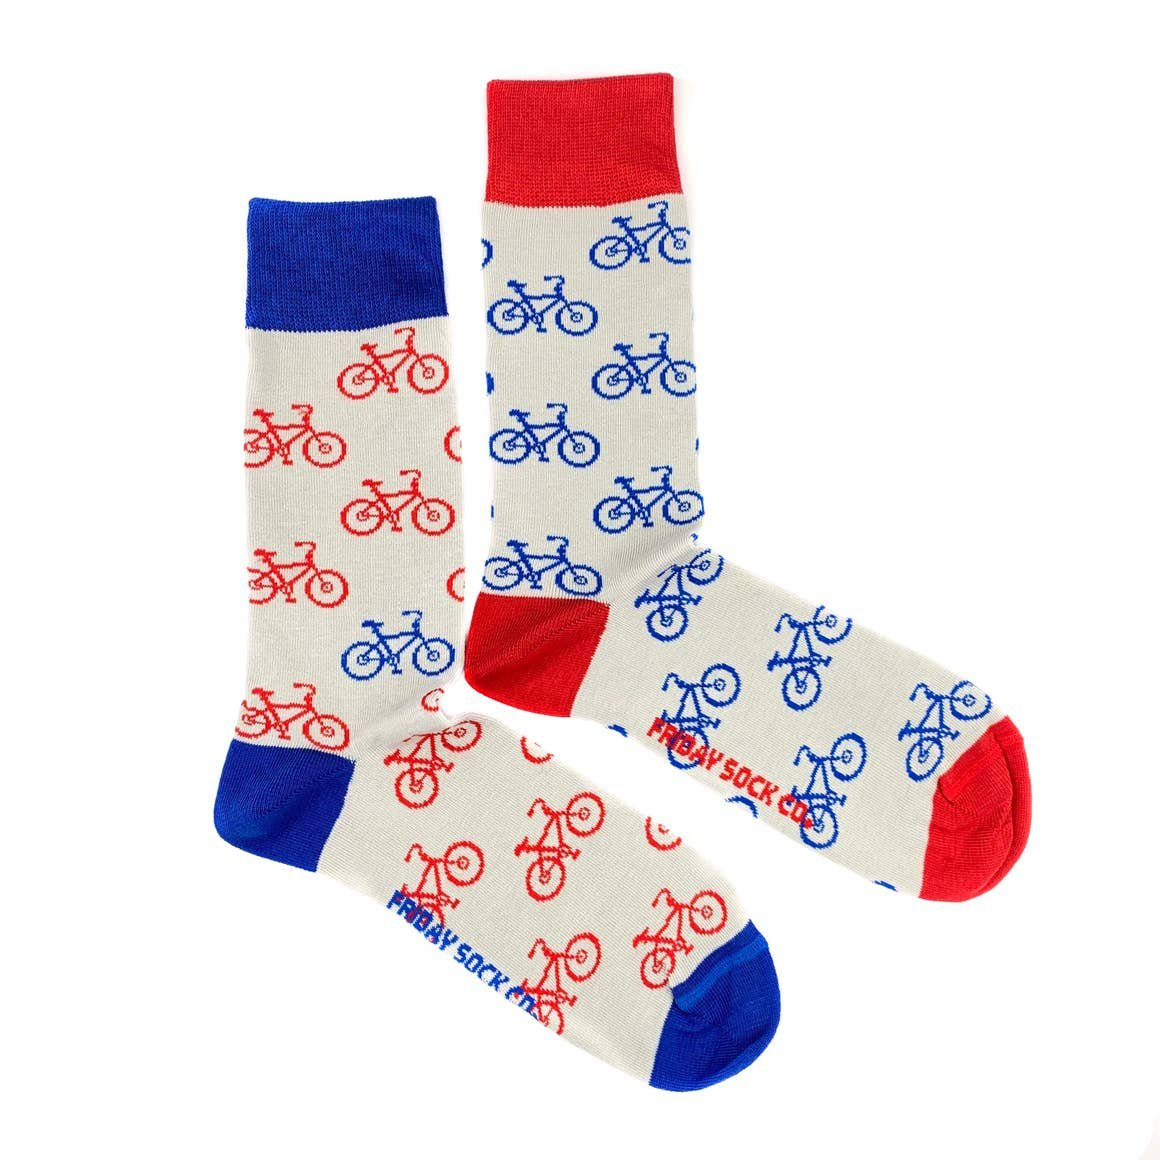 FRIDAY BIKE SOCK